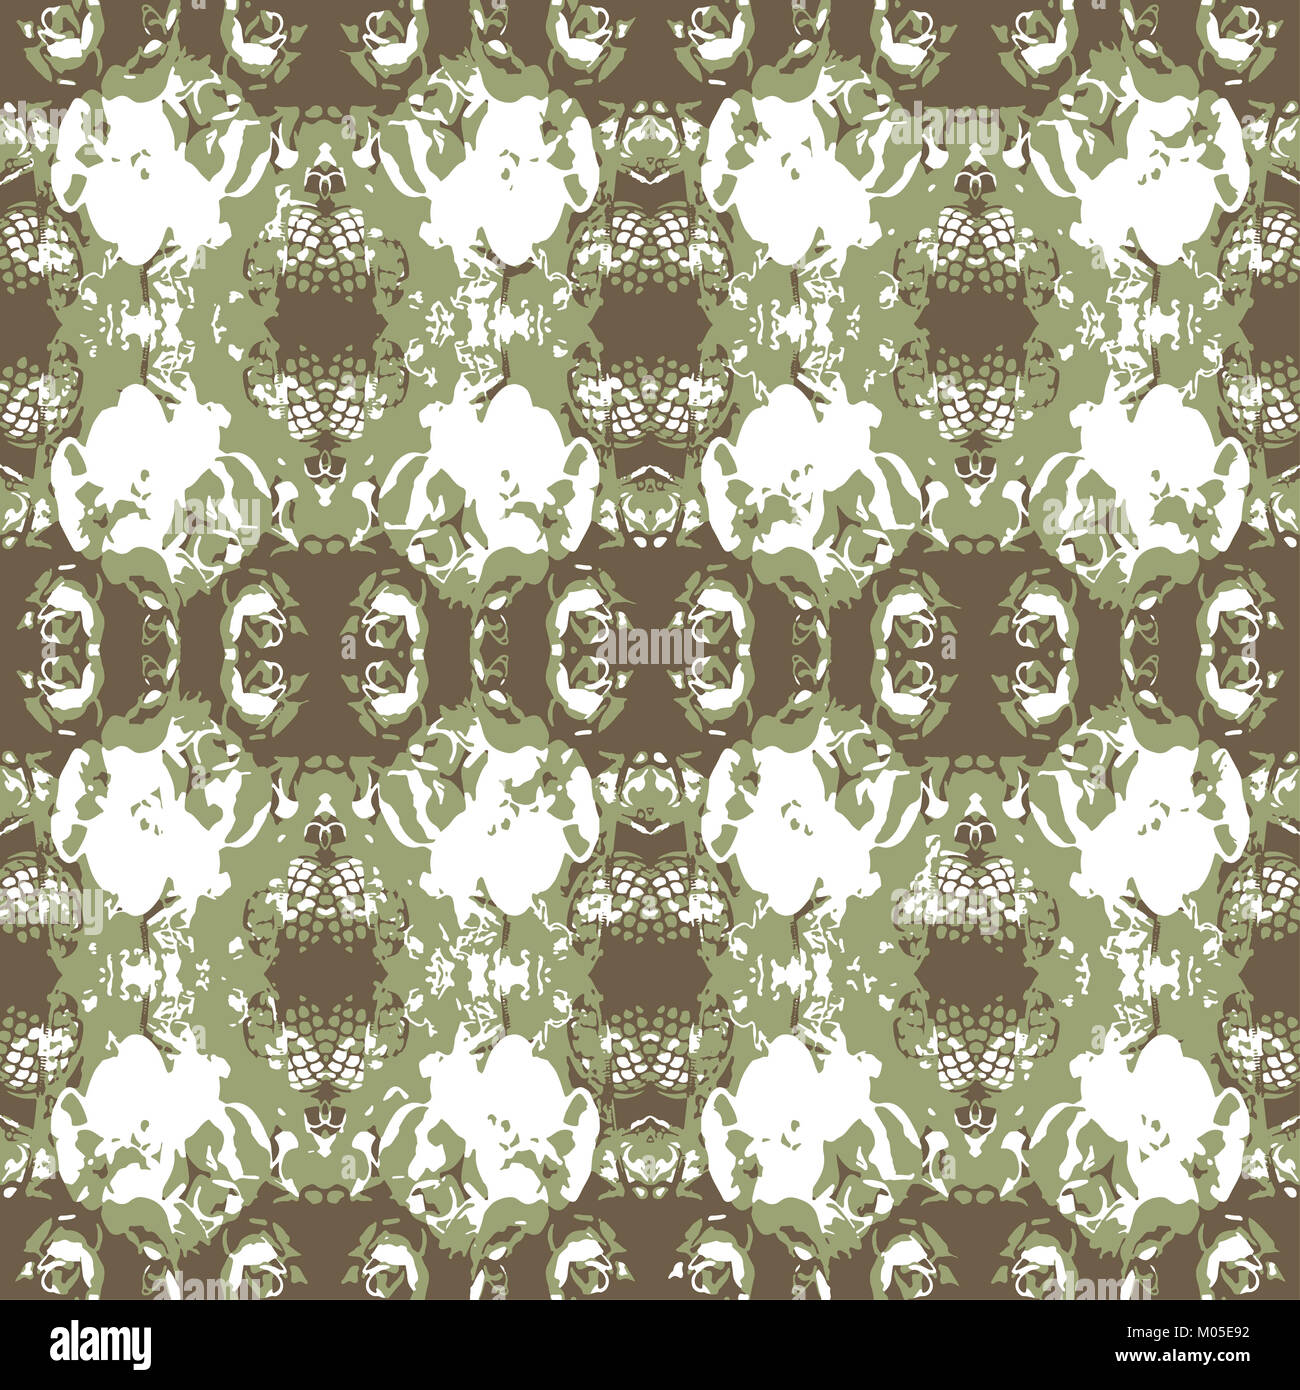 Digital collage technique vintage ornate seamless pattern design in brown and green colors Stock Photo